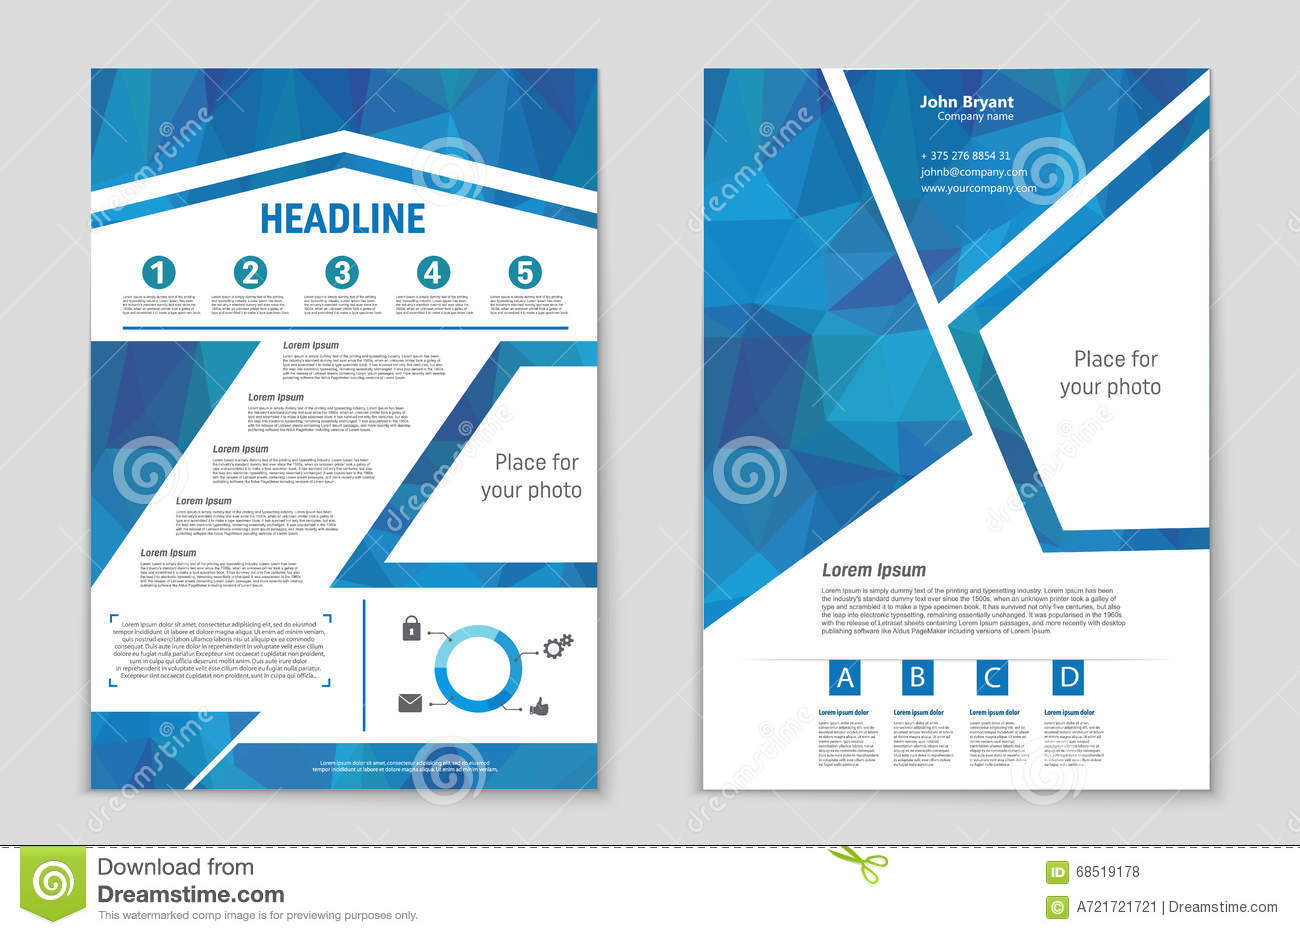 Book Cover Template Doc : List page mockup brochure theme style banner idea